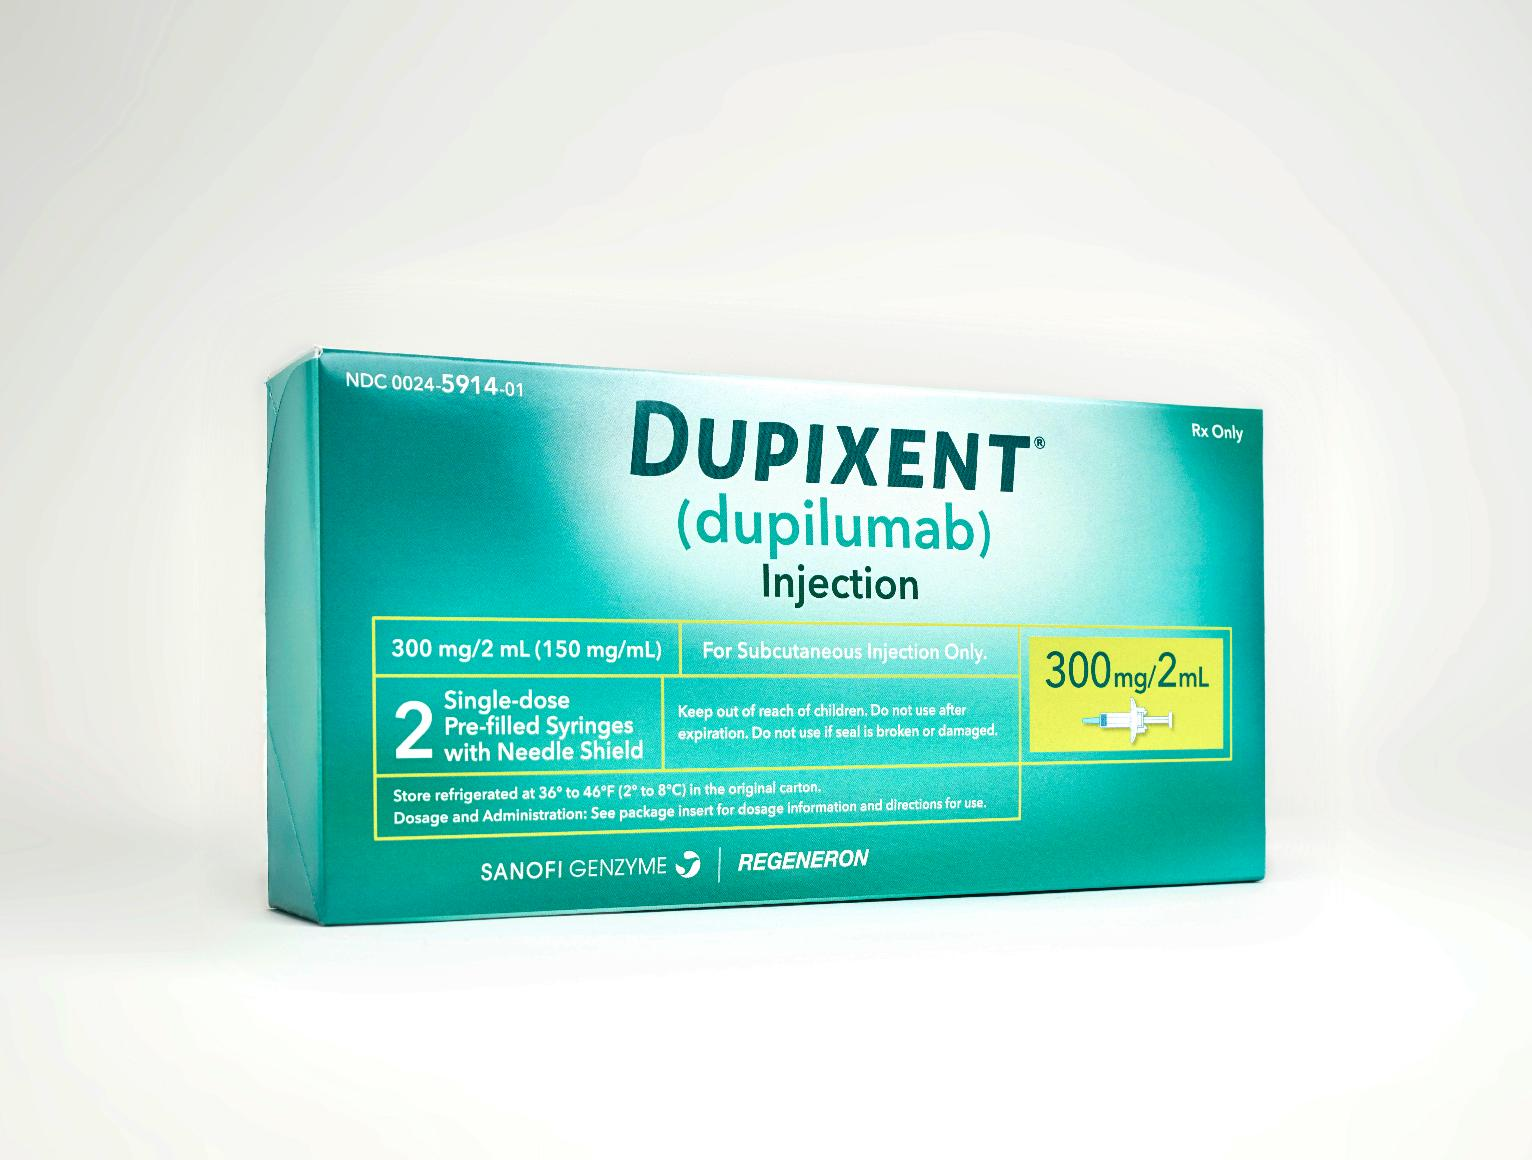 Food and Drug Administration Approves Dupixent, First Drug